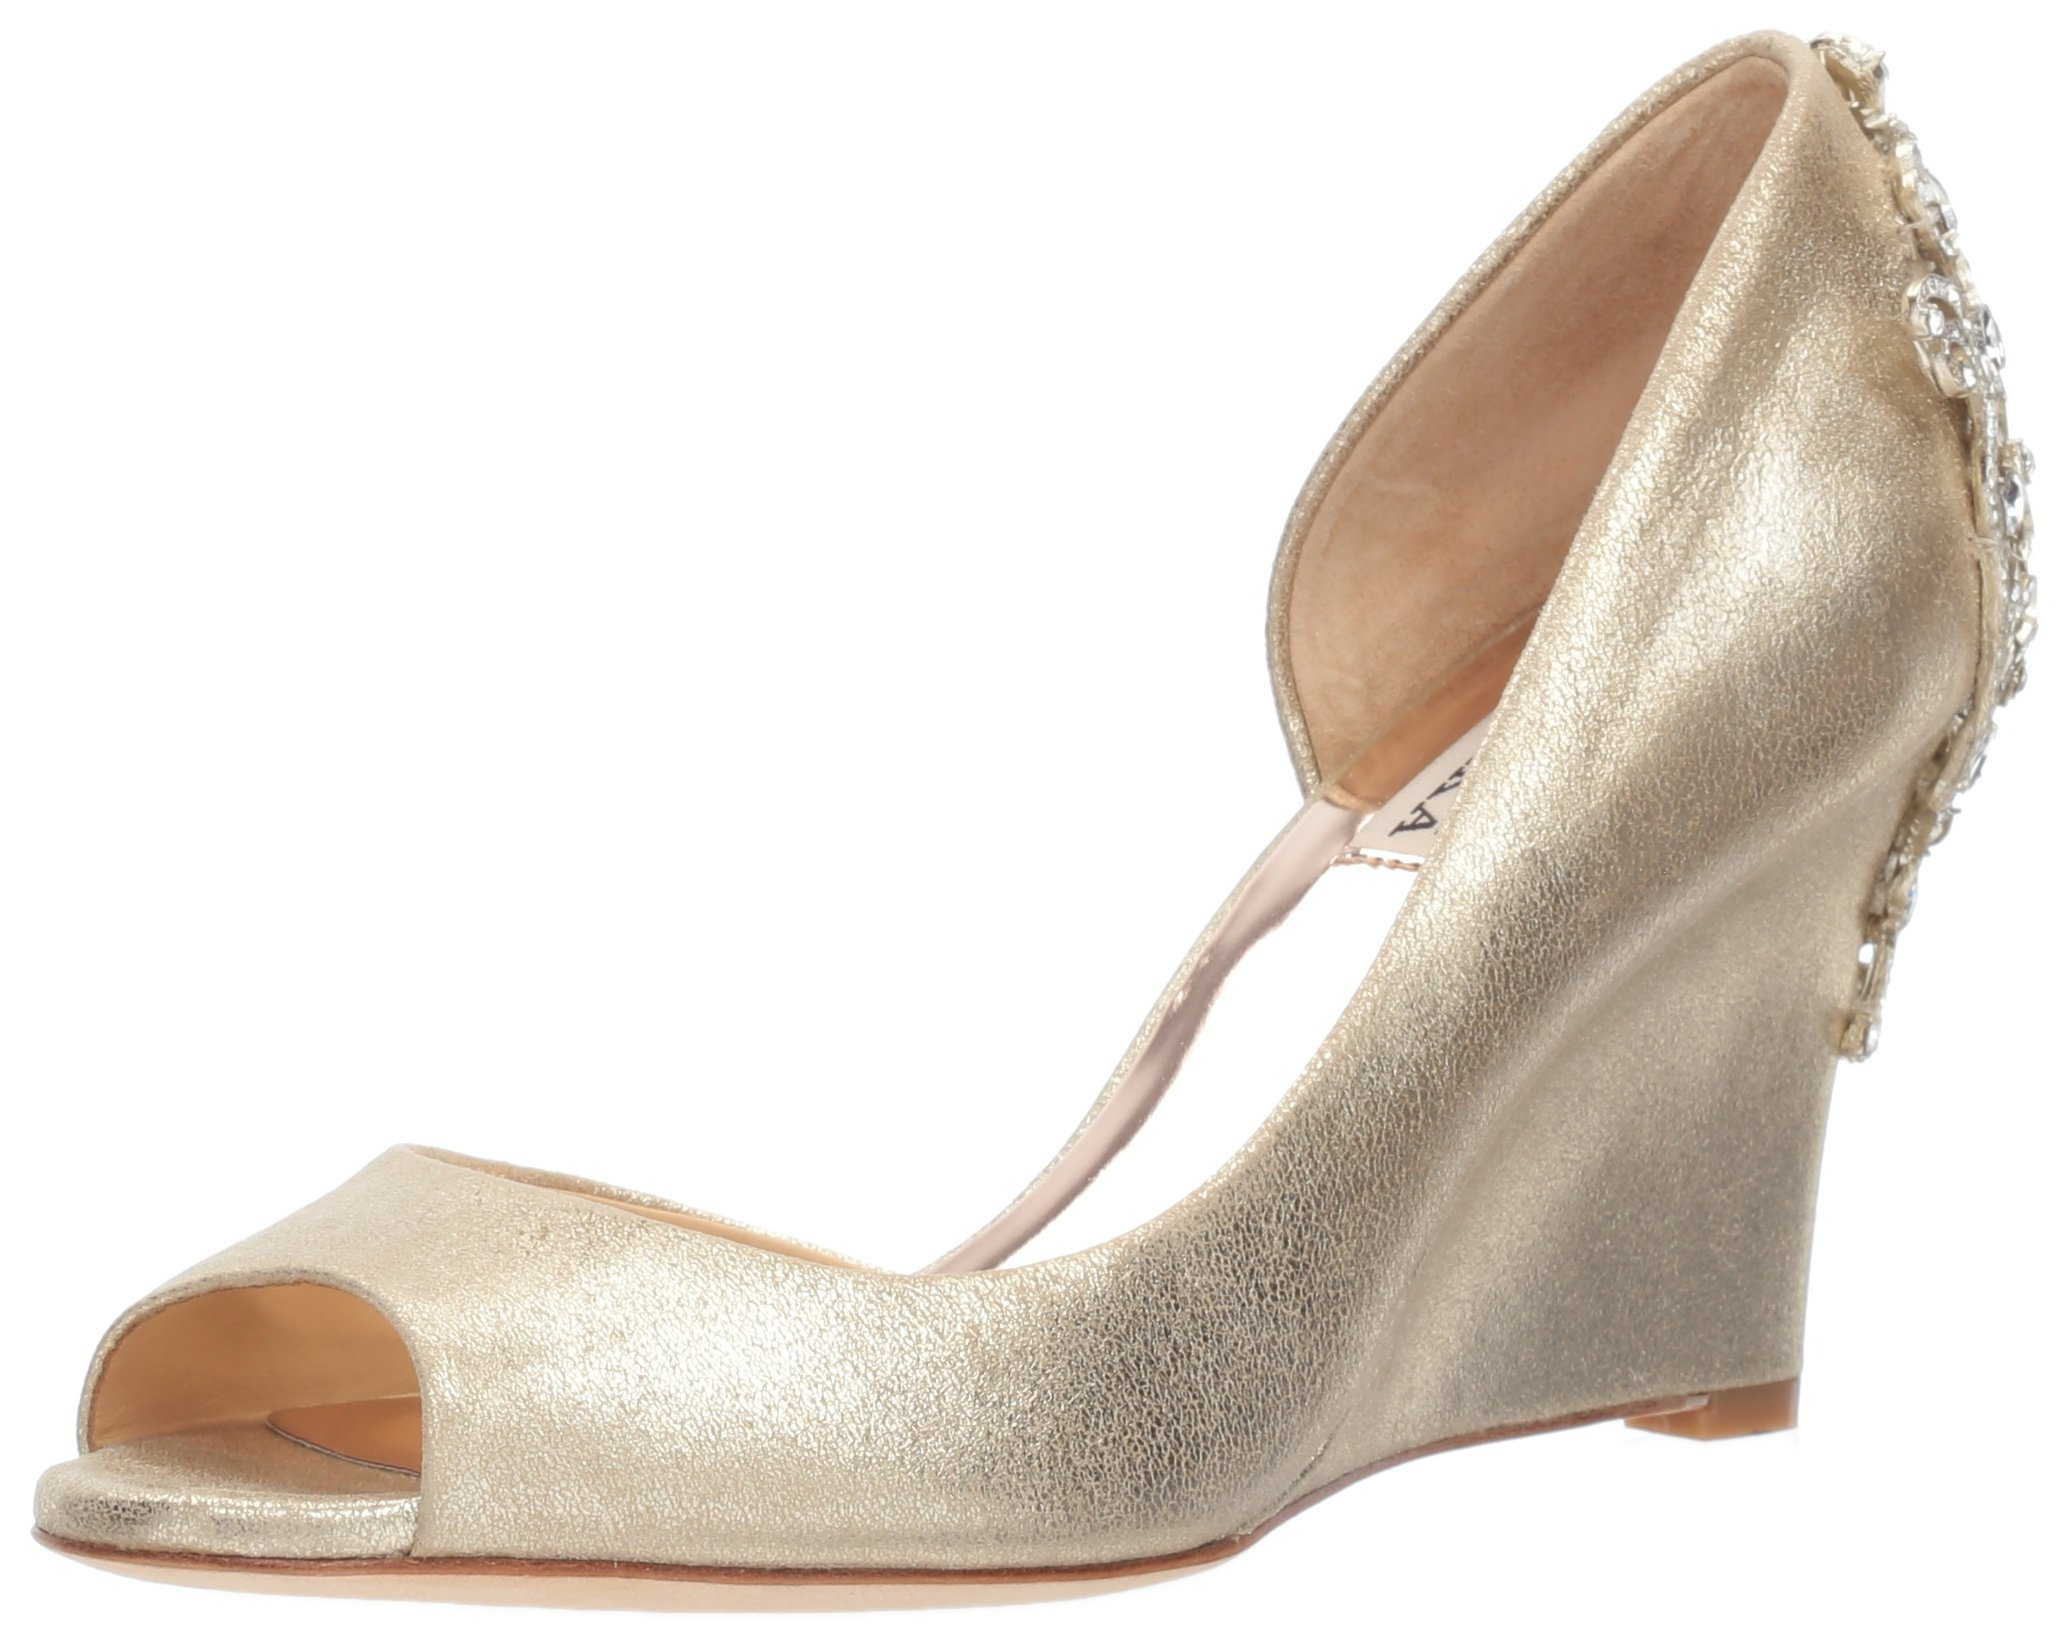 Badgley Mischka Women's Meagan II Pump, platino_929, 7 M US by Badgley Mischka (Image #1)